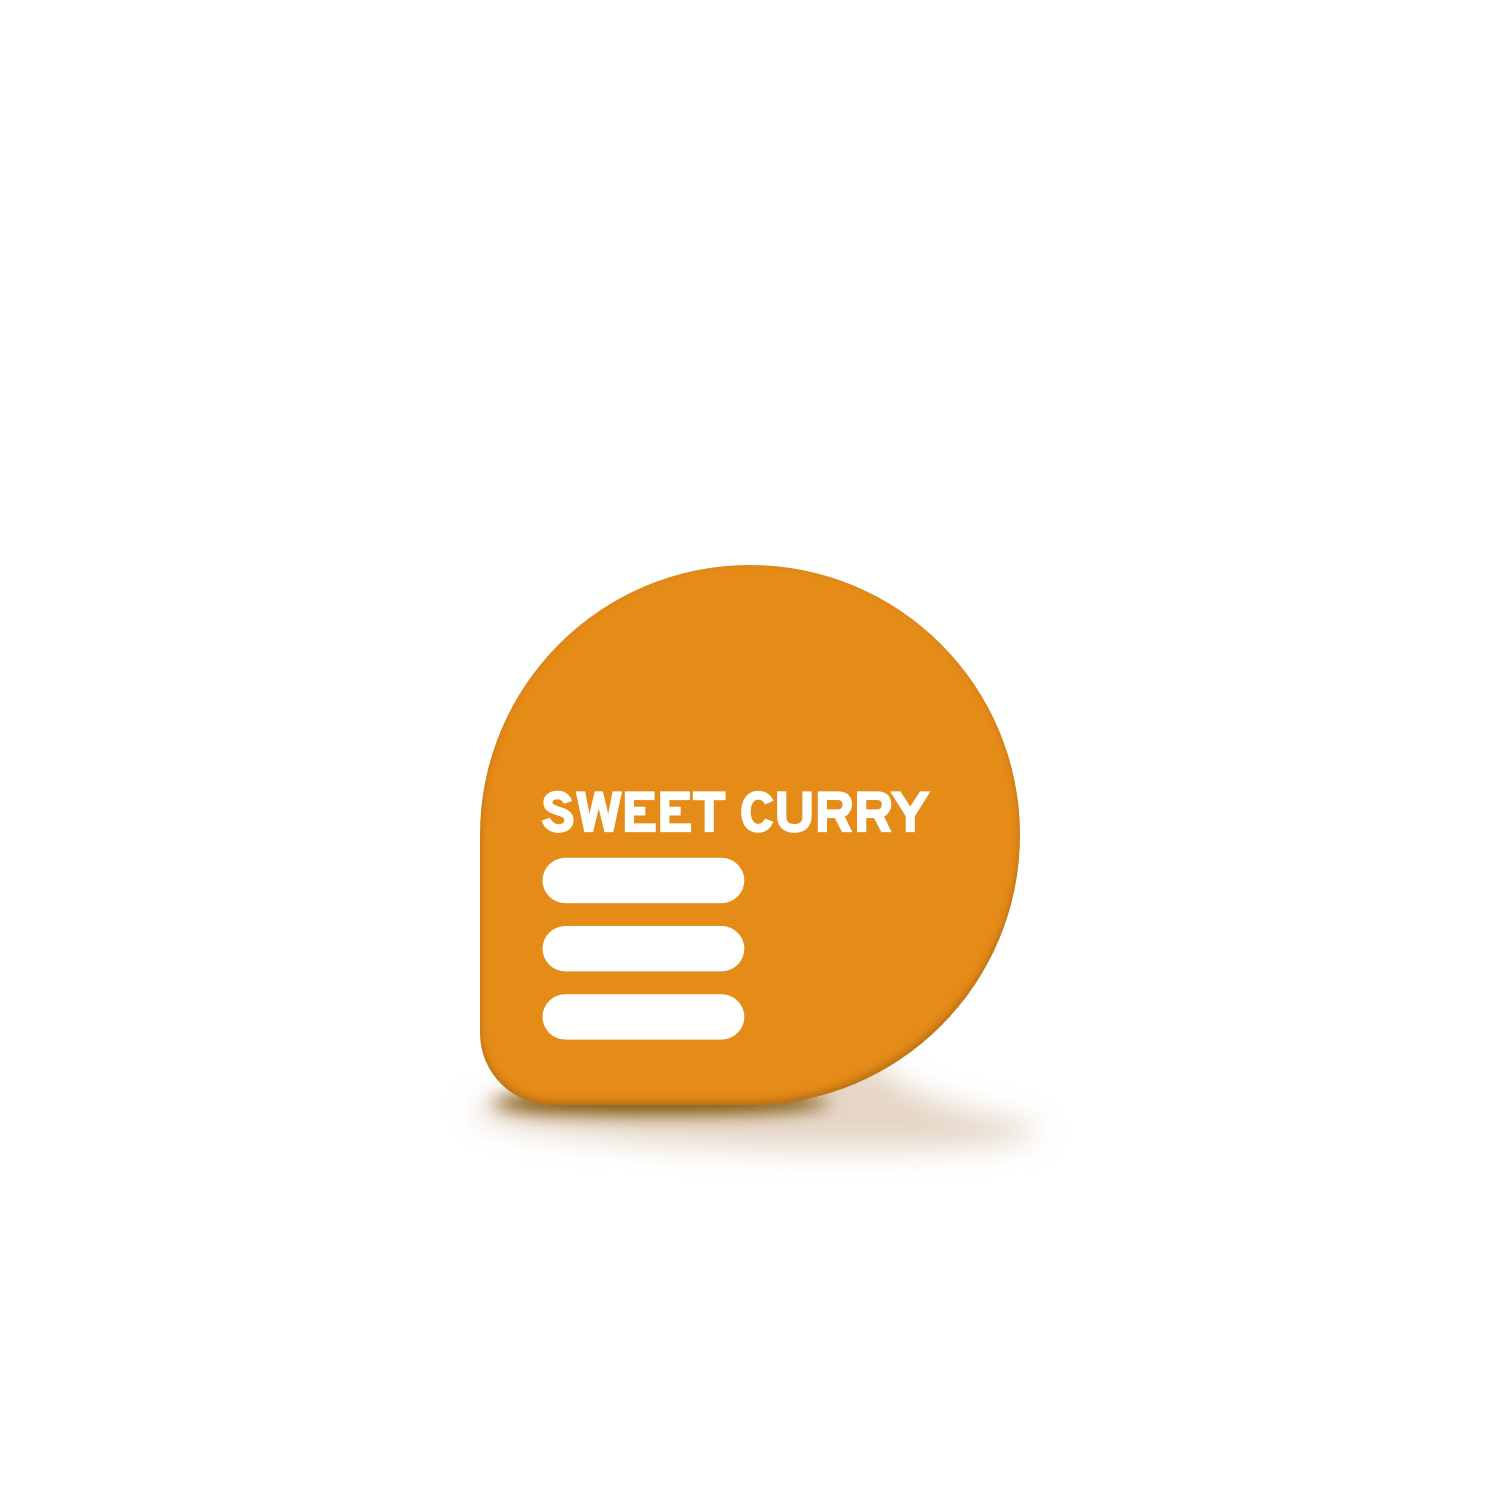 Sweet Curry